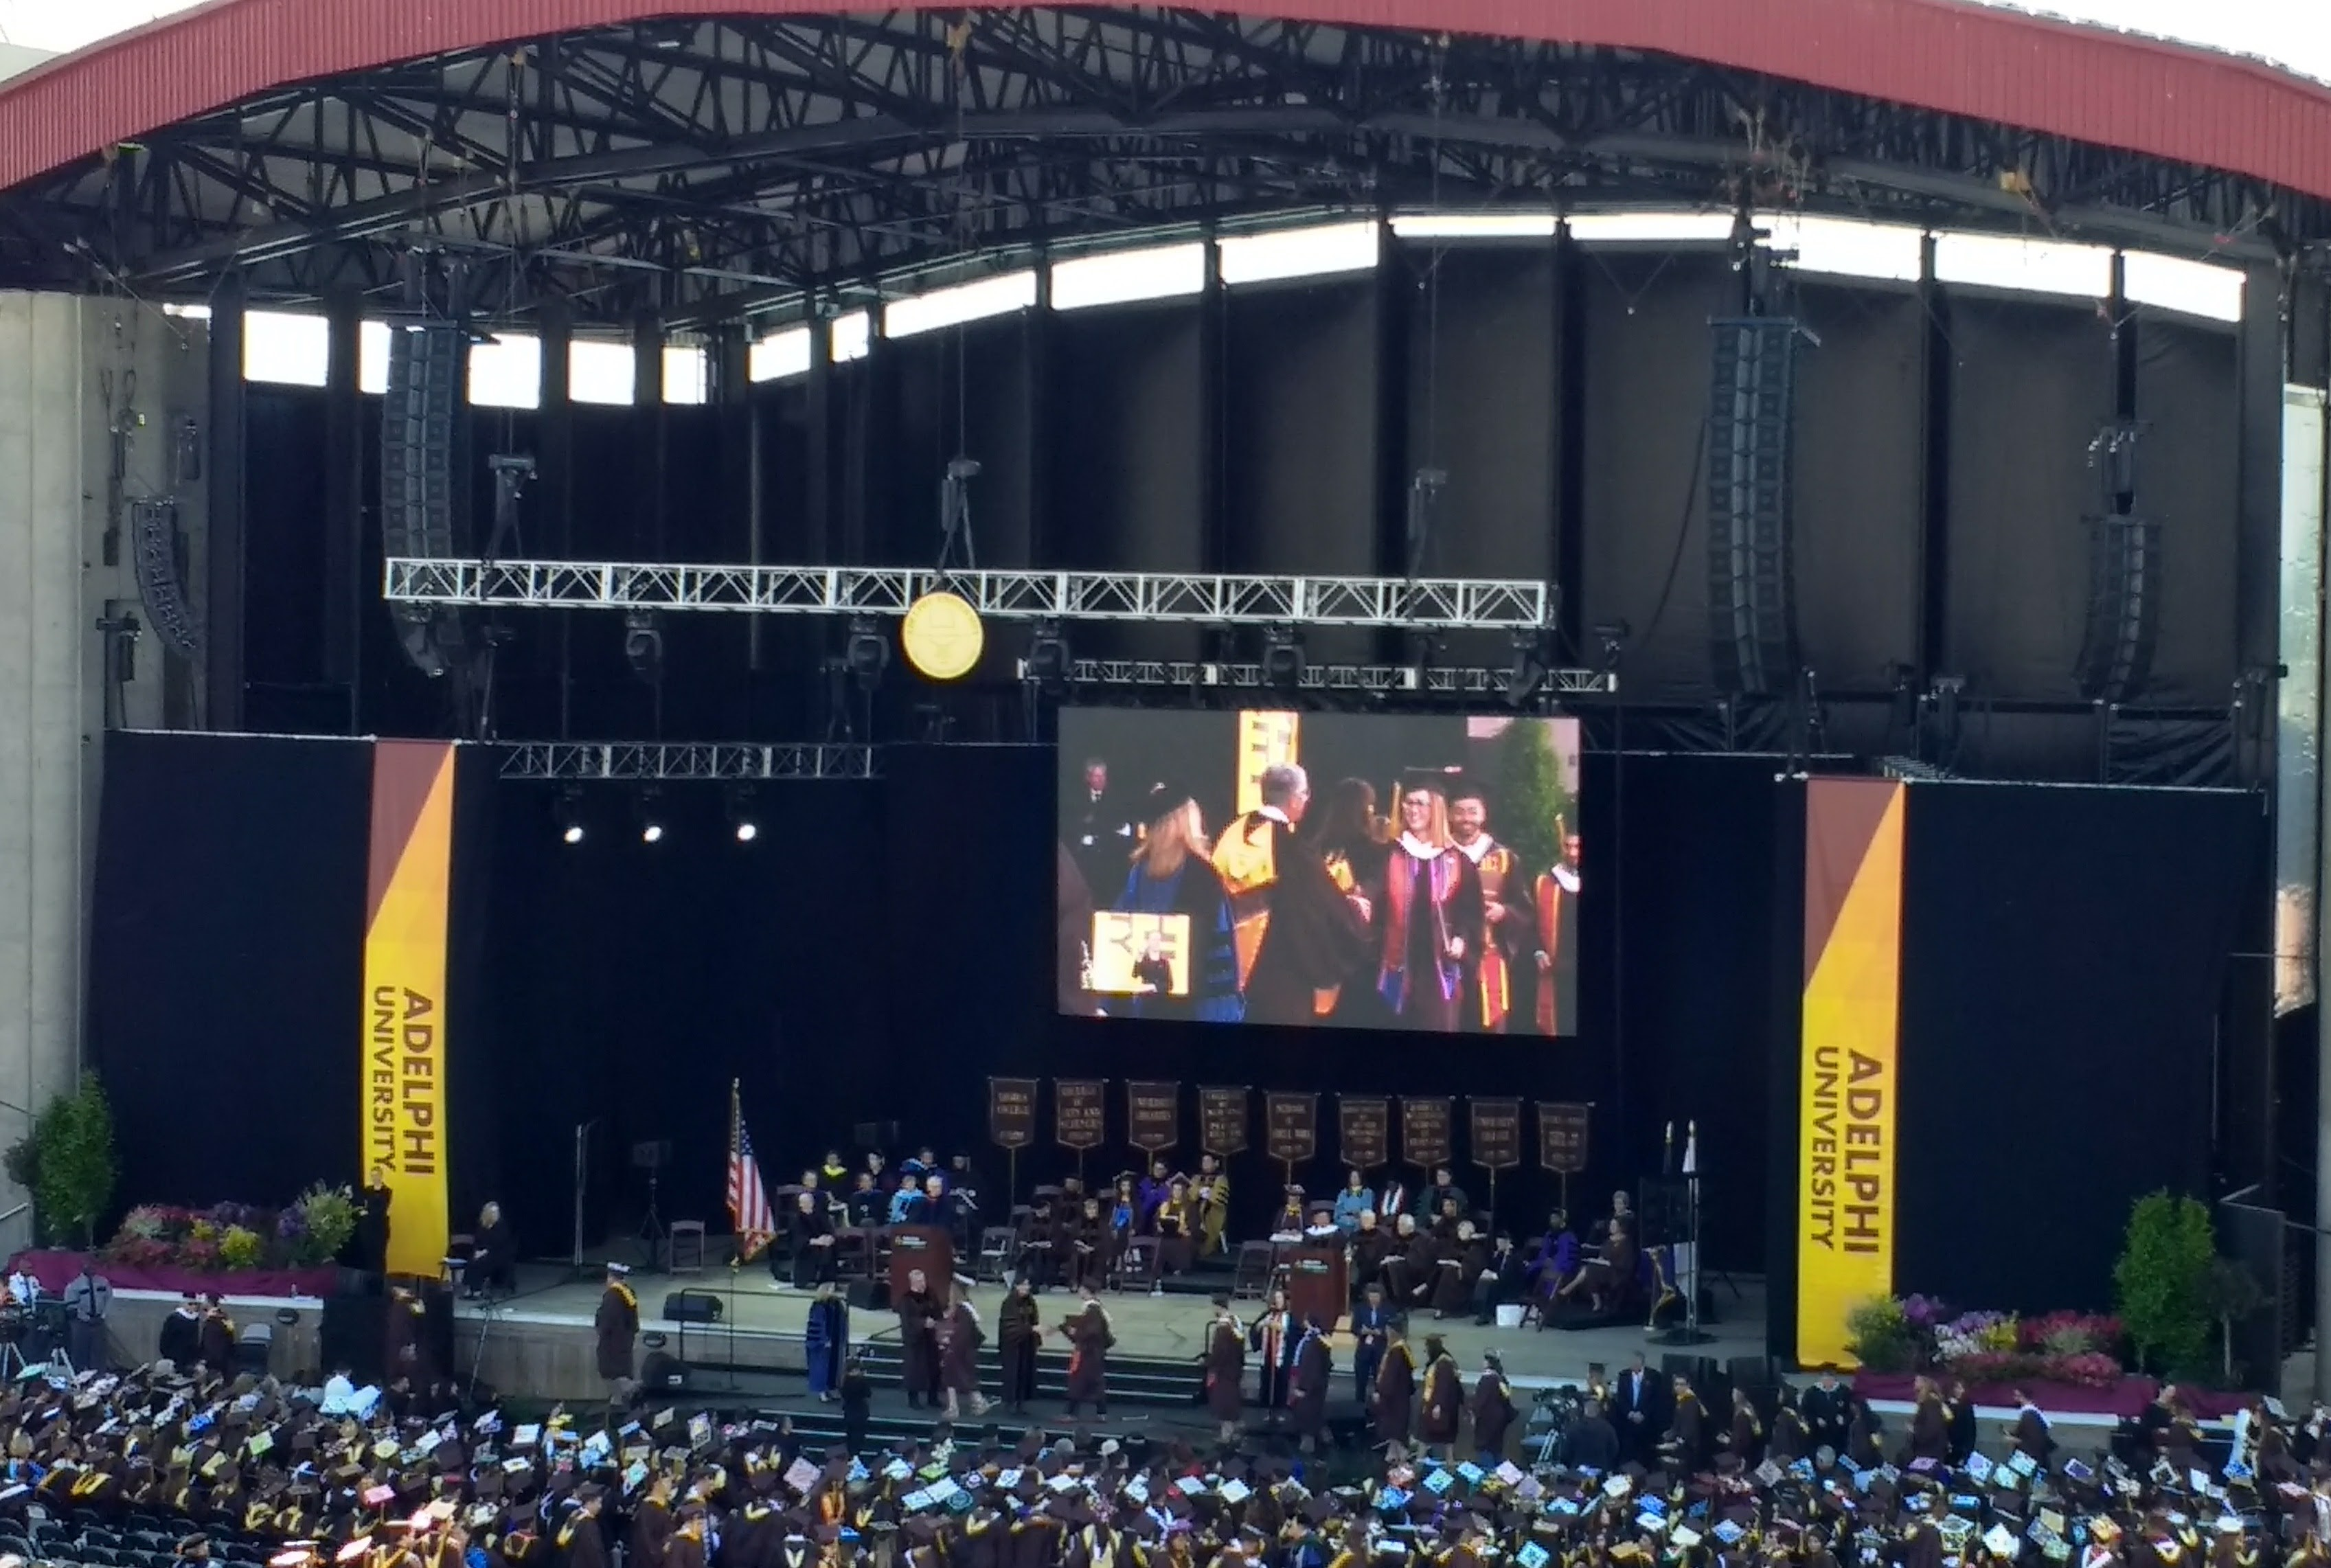 A The Adelphi University Graduation of 2017 held at the Jones Beach Theater.